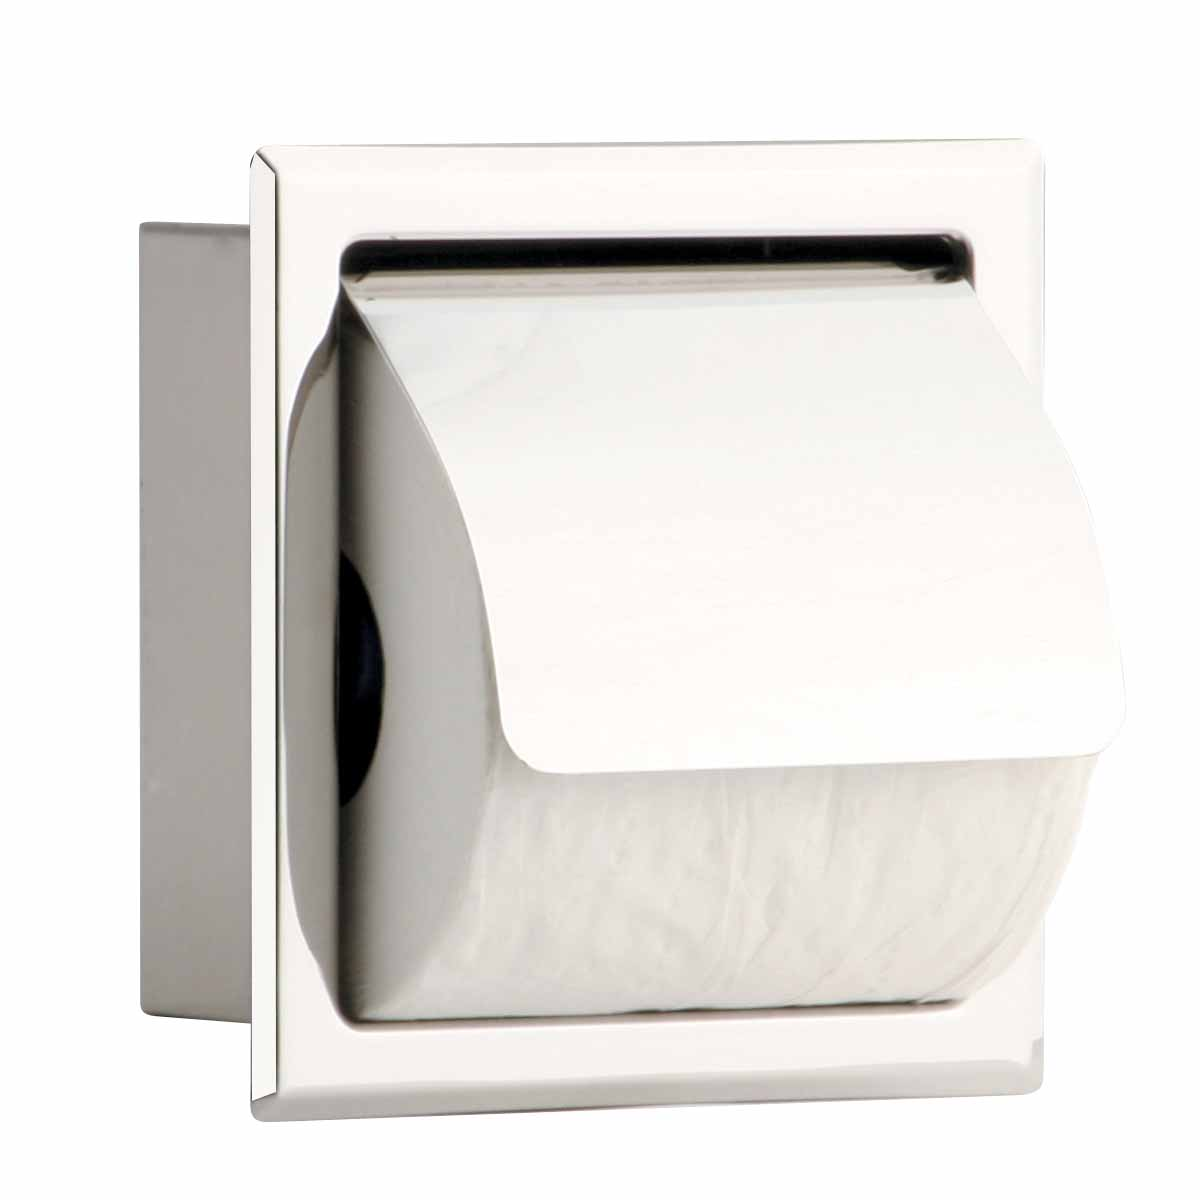 Toilet Paper Holder Stainless Steel Polished With Lid Renovator S Supply